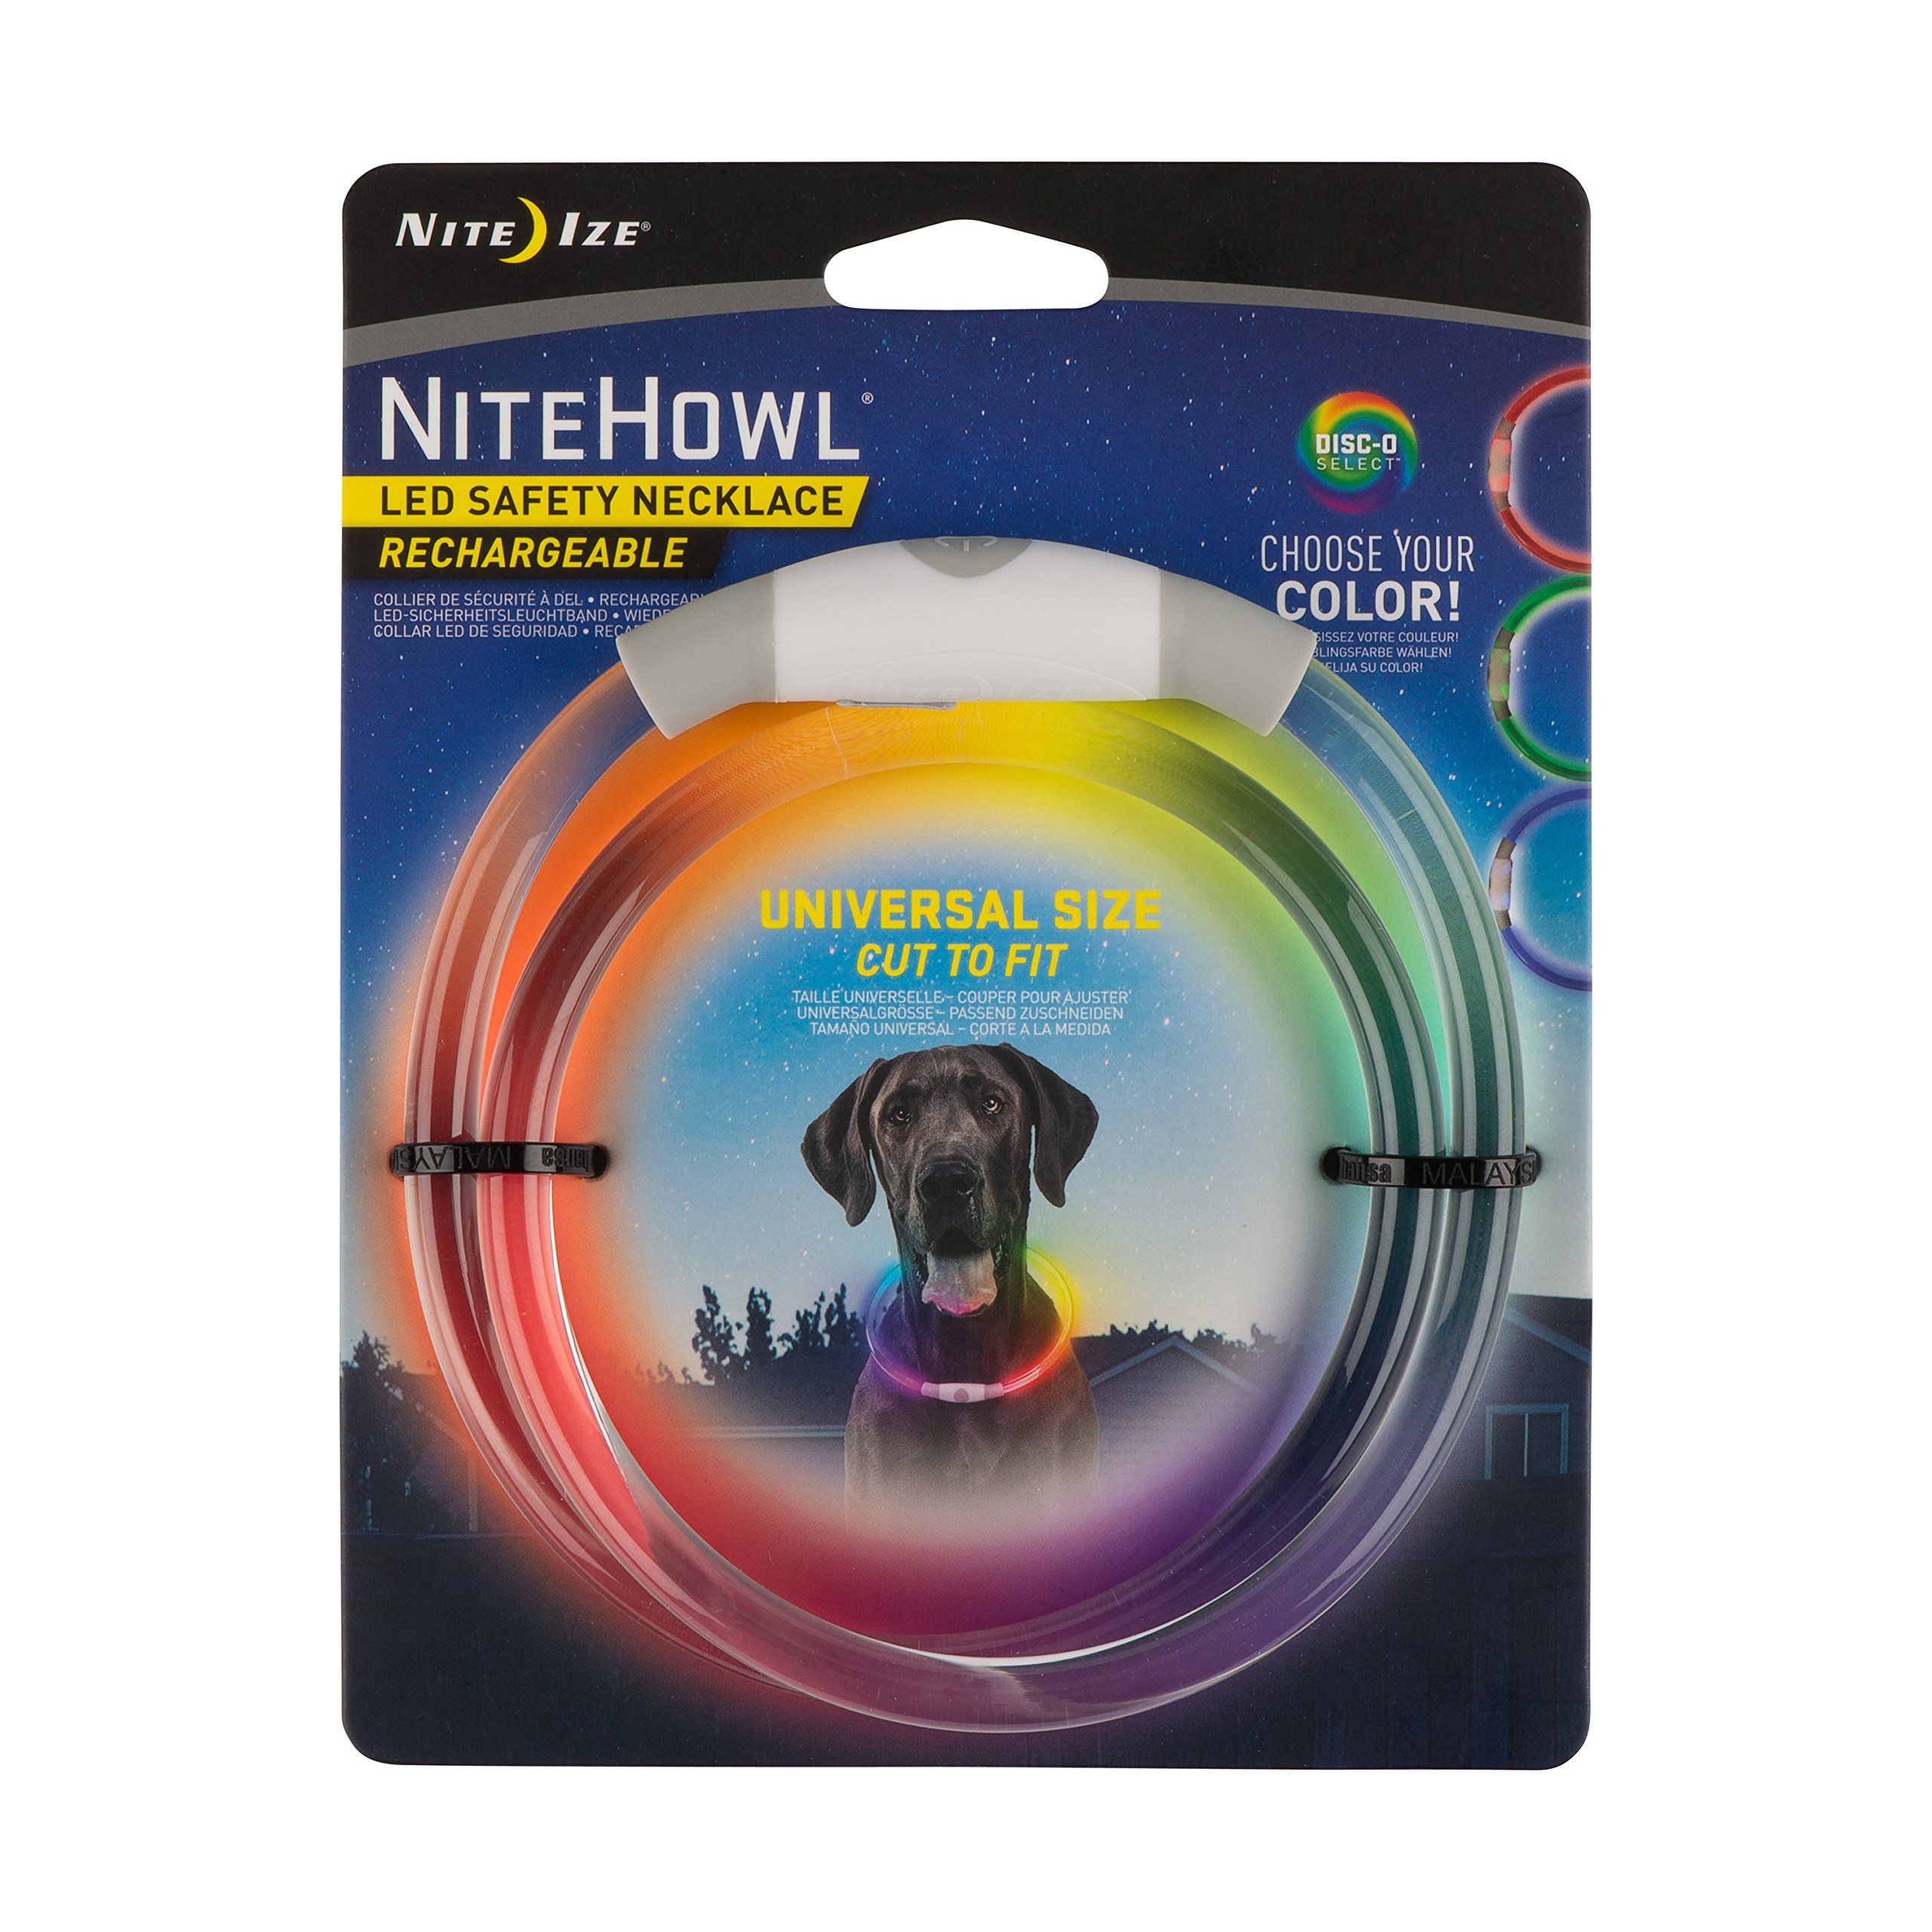 Nite Howl Rechargeable LED Safety Necklace with Disc-O Select Choose-Your-Color LED, Reusable Visibility Necklace for Pets by Nite Ize